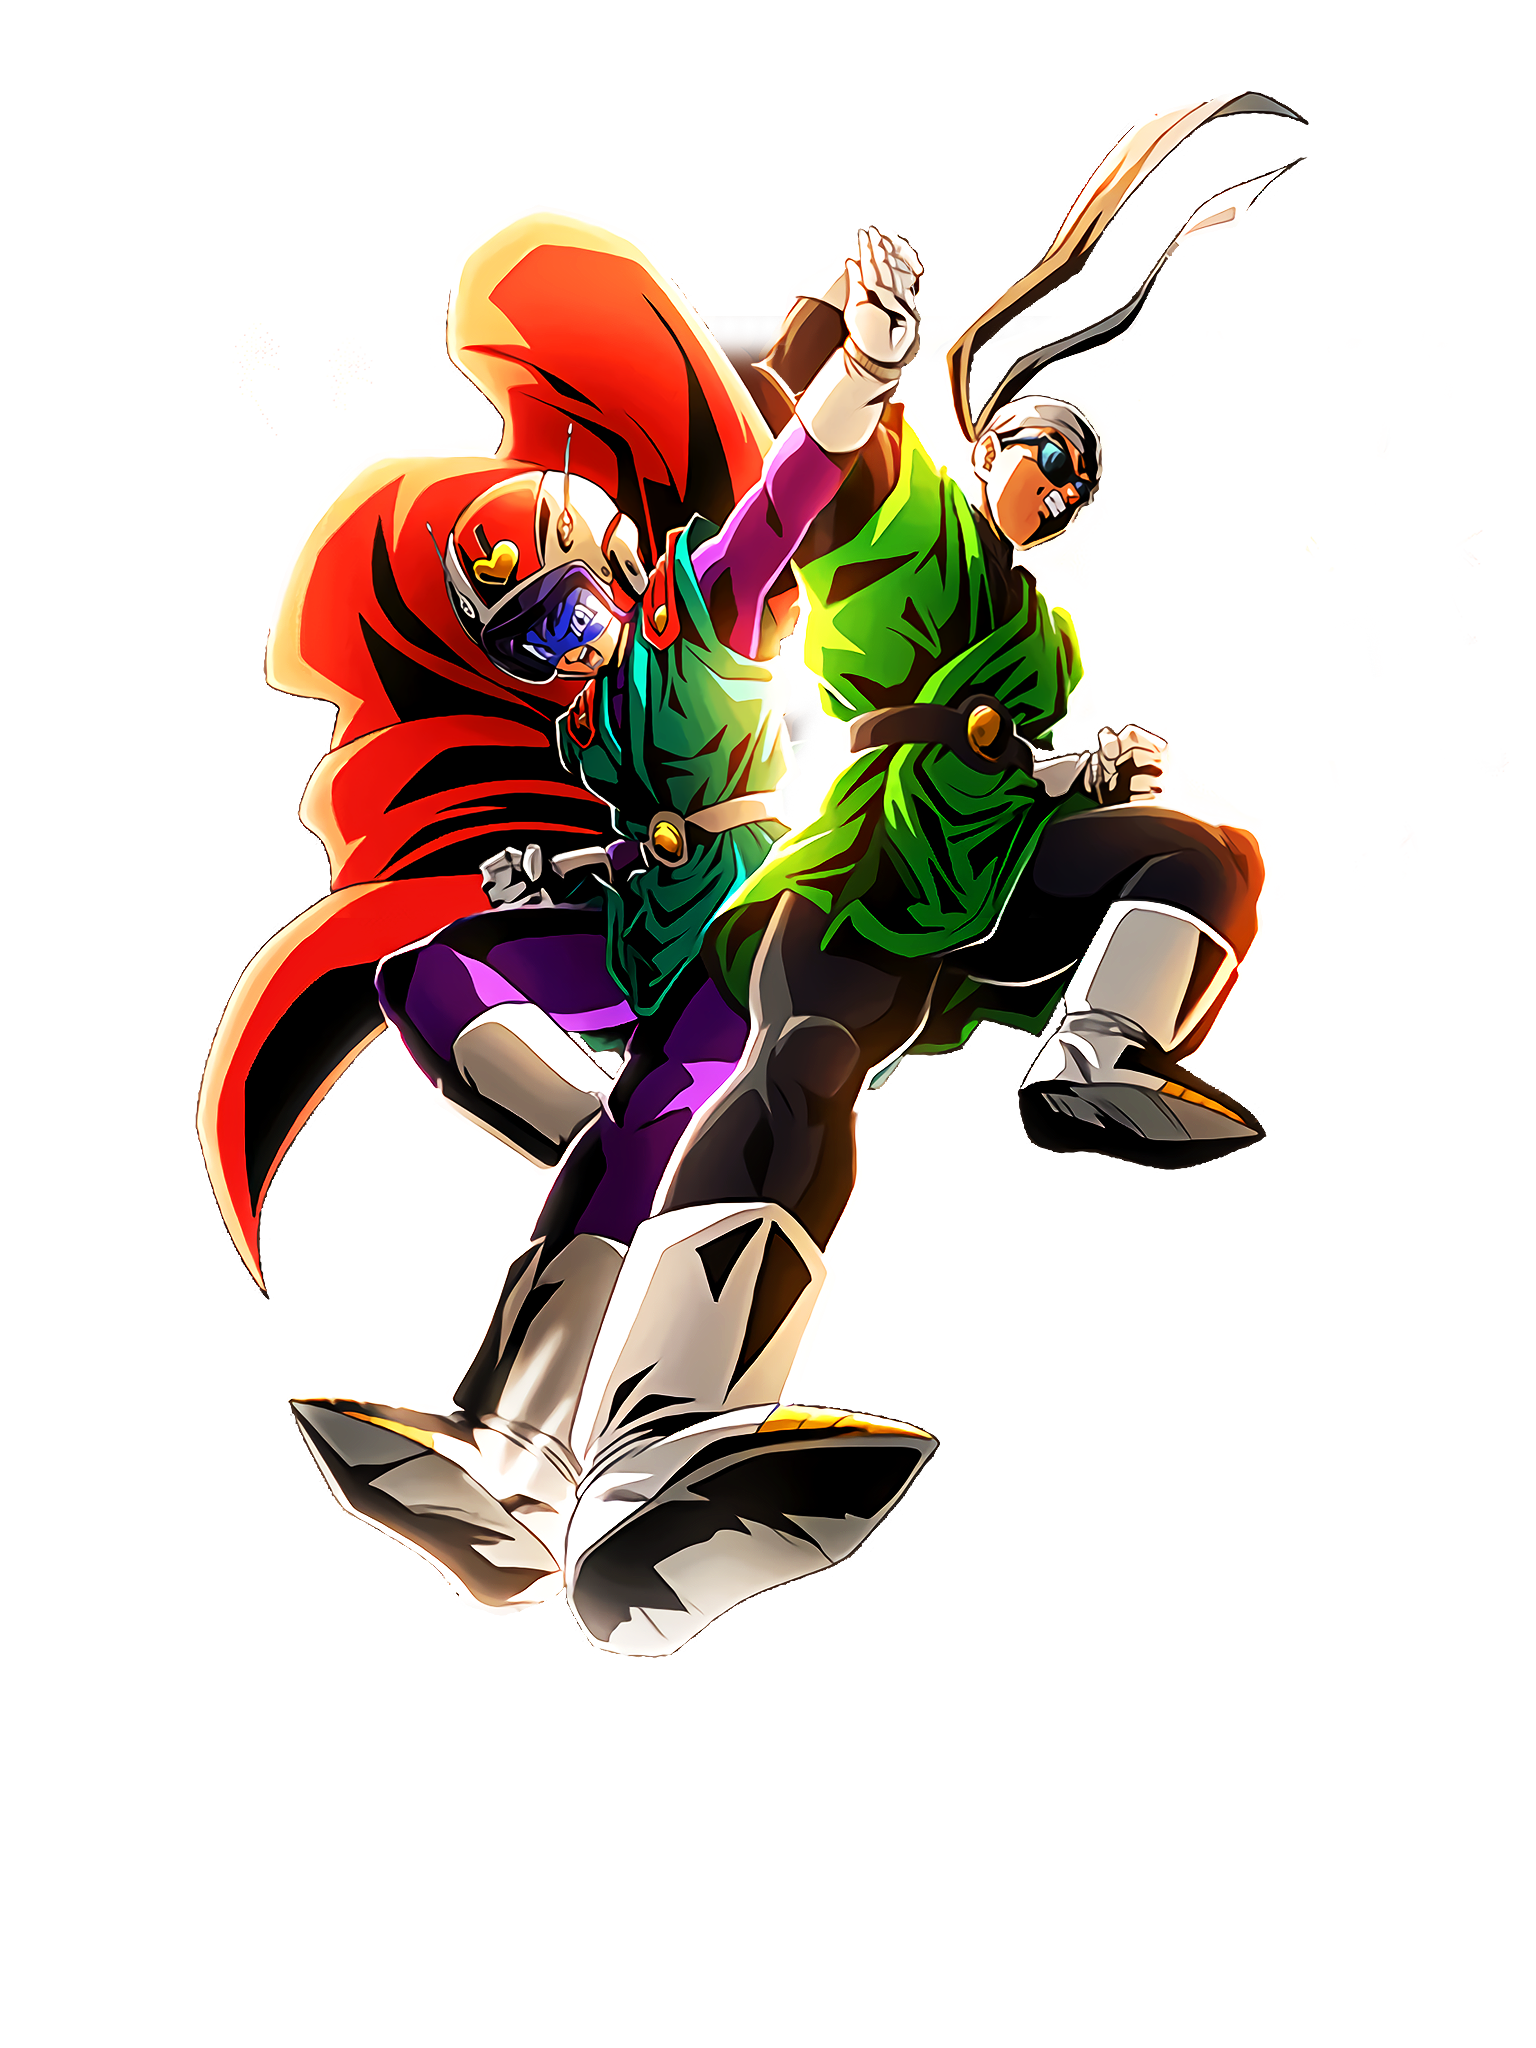 Blazing Love and Burning Justice Great Saiyaman 1 & 2 Render (Dragon Ball Z Dokkan Battle) .png